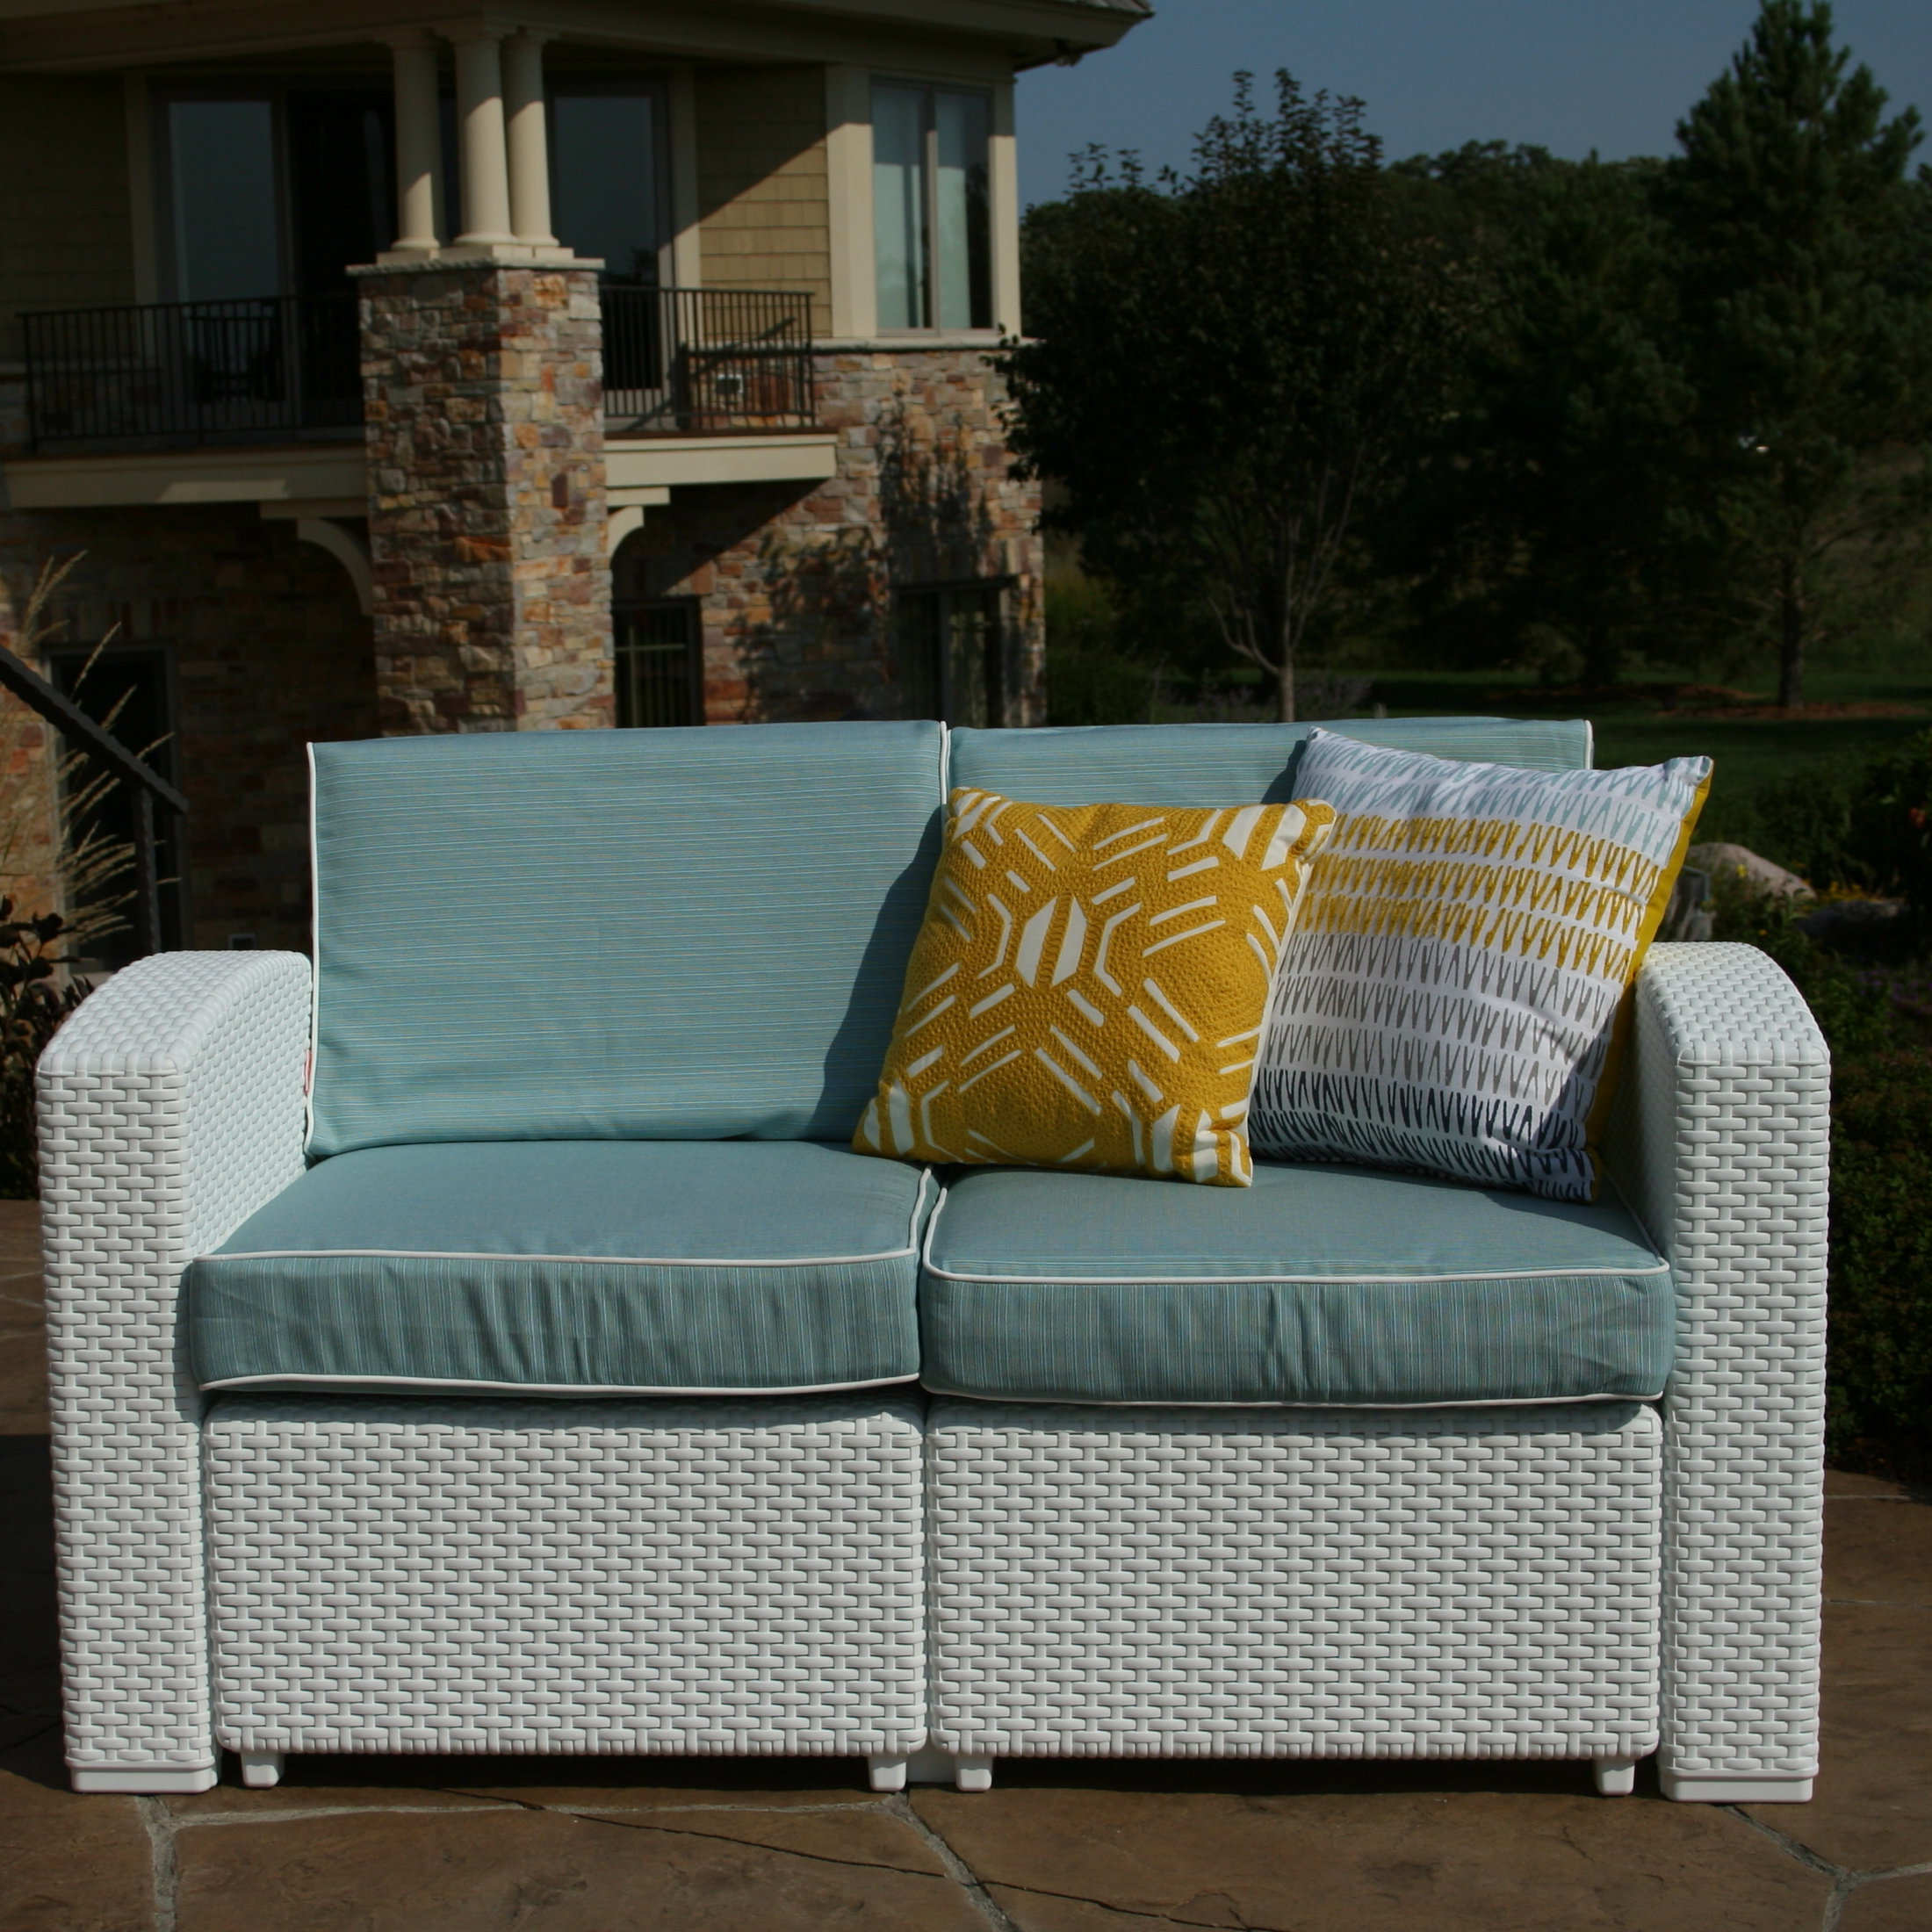 Loggins Patio Loveseat With Cushions Intended For Widely Used Loggins Patio Sofas With Cushions (View 9 of 20)